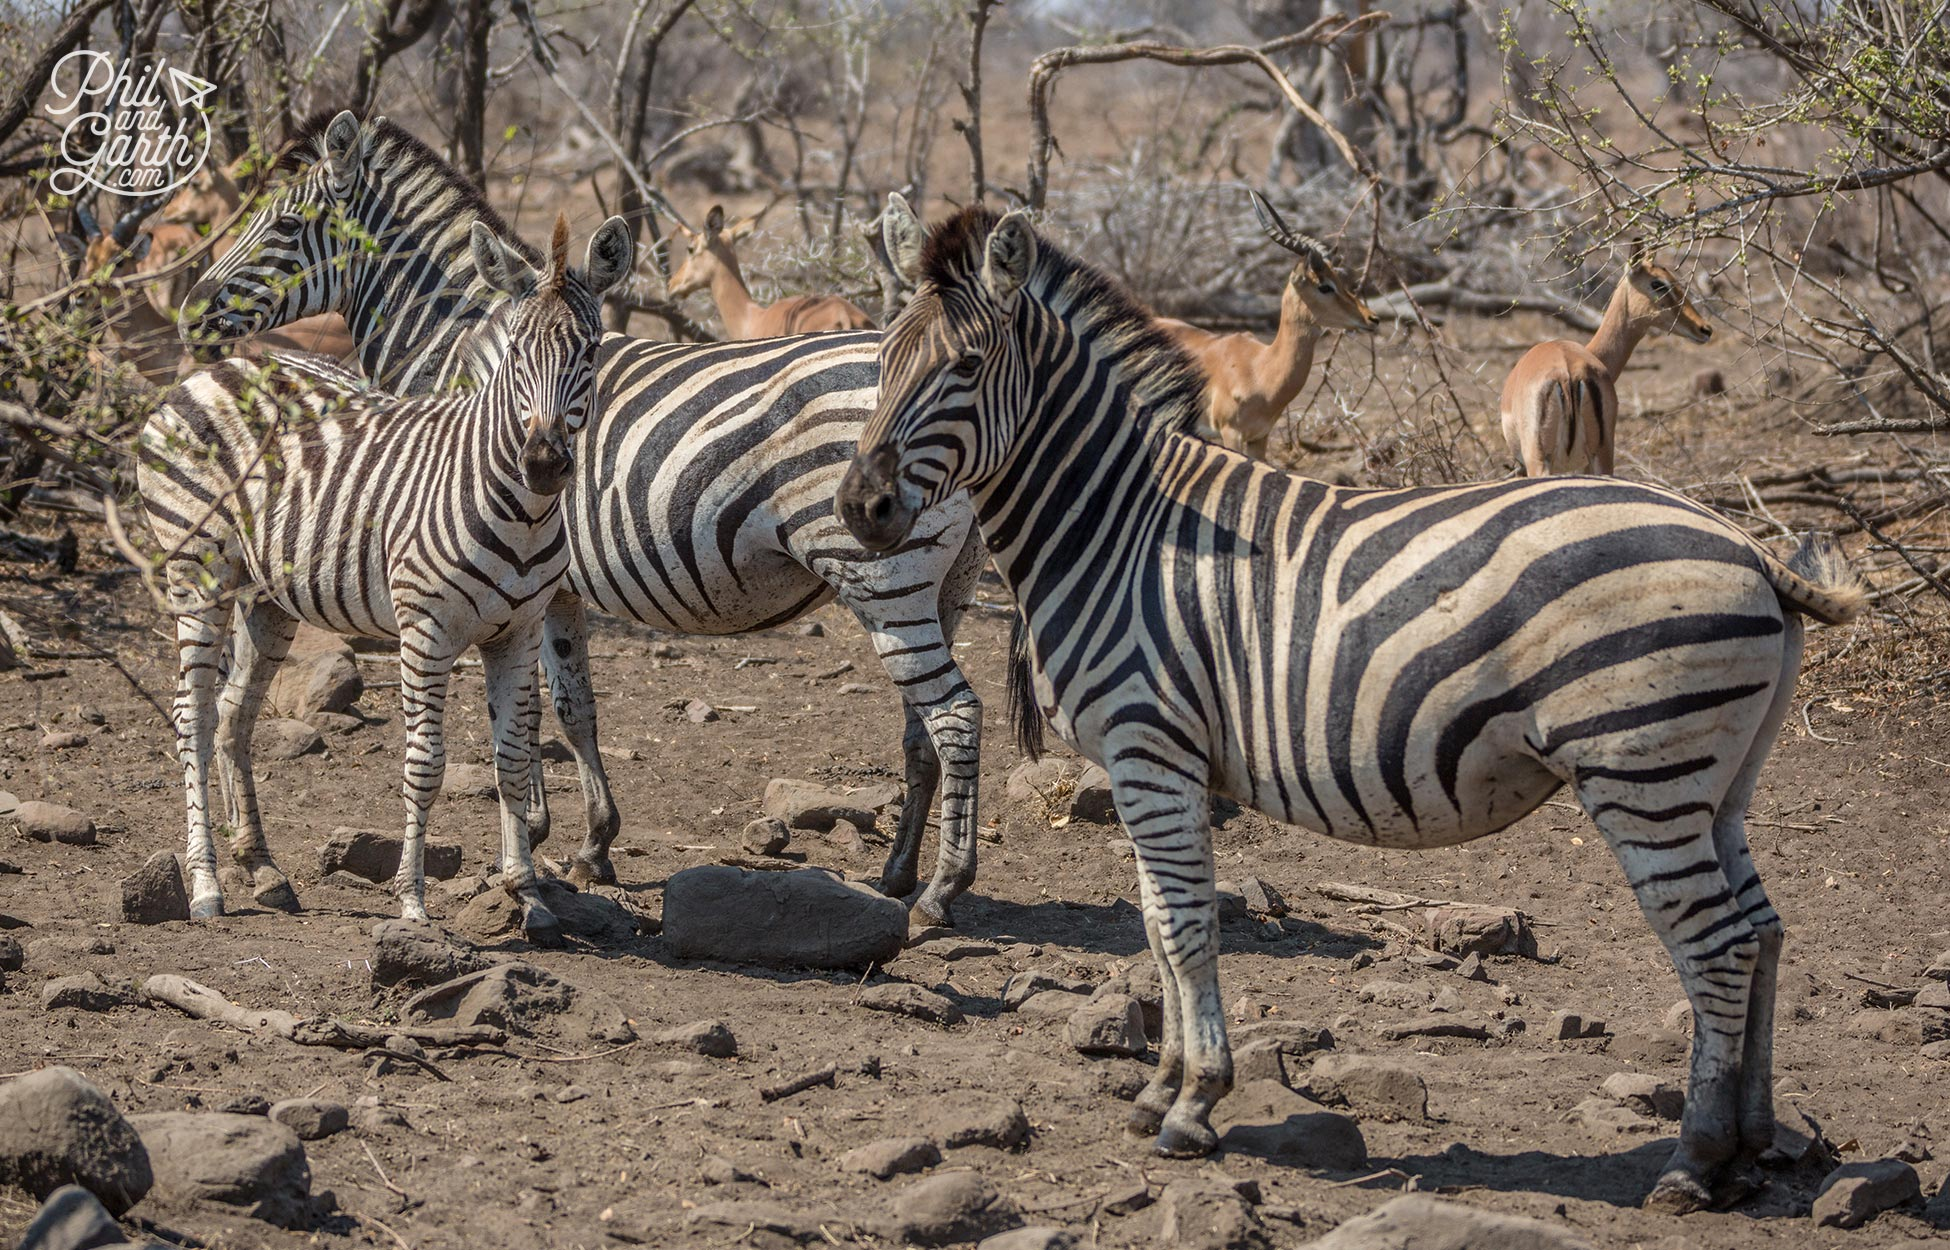 2 day Kruger National Park Safari - Zebras gather near to a watering hole - Zebras really do look like painted horses